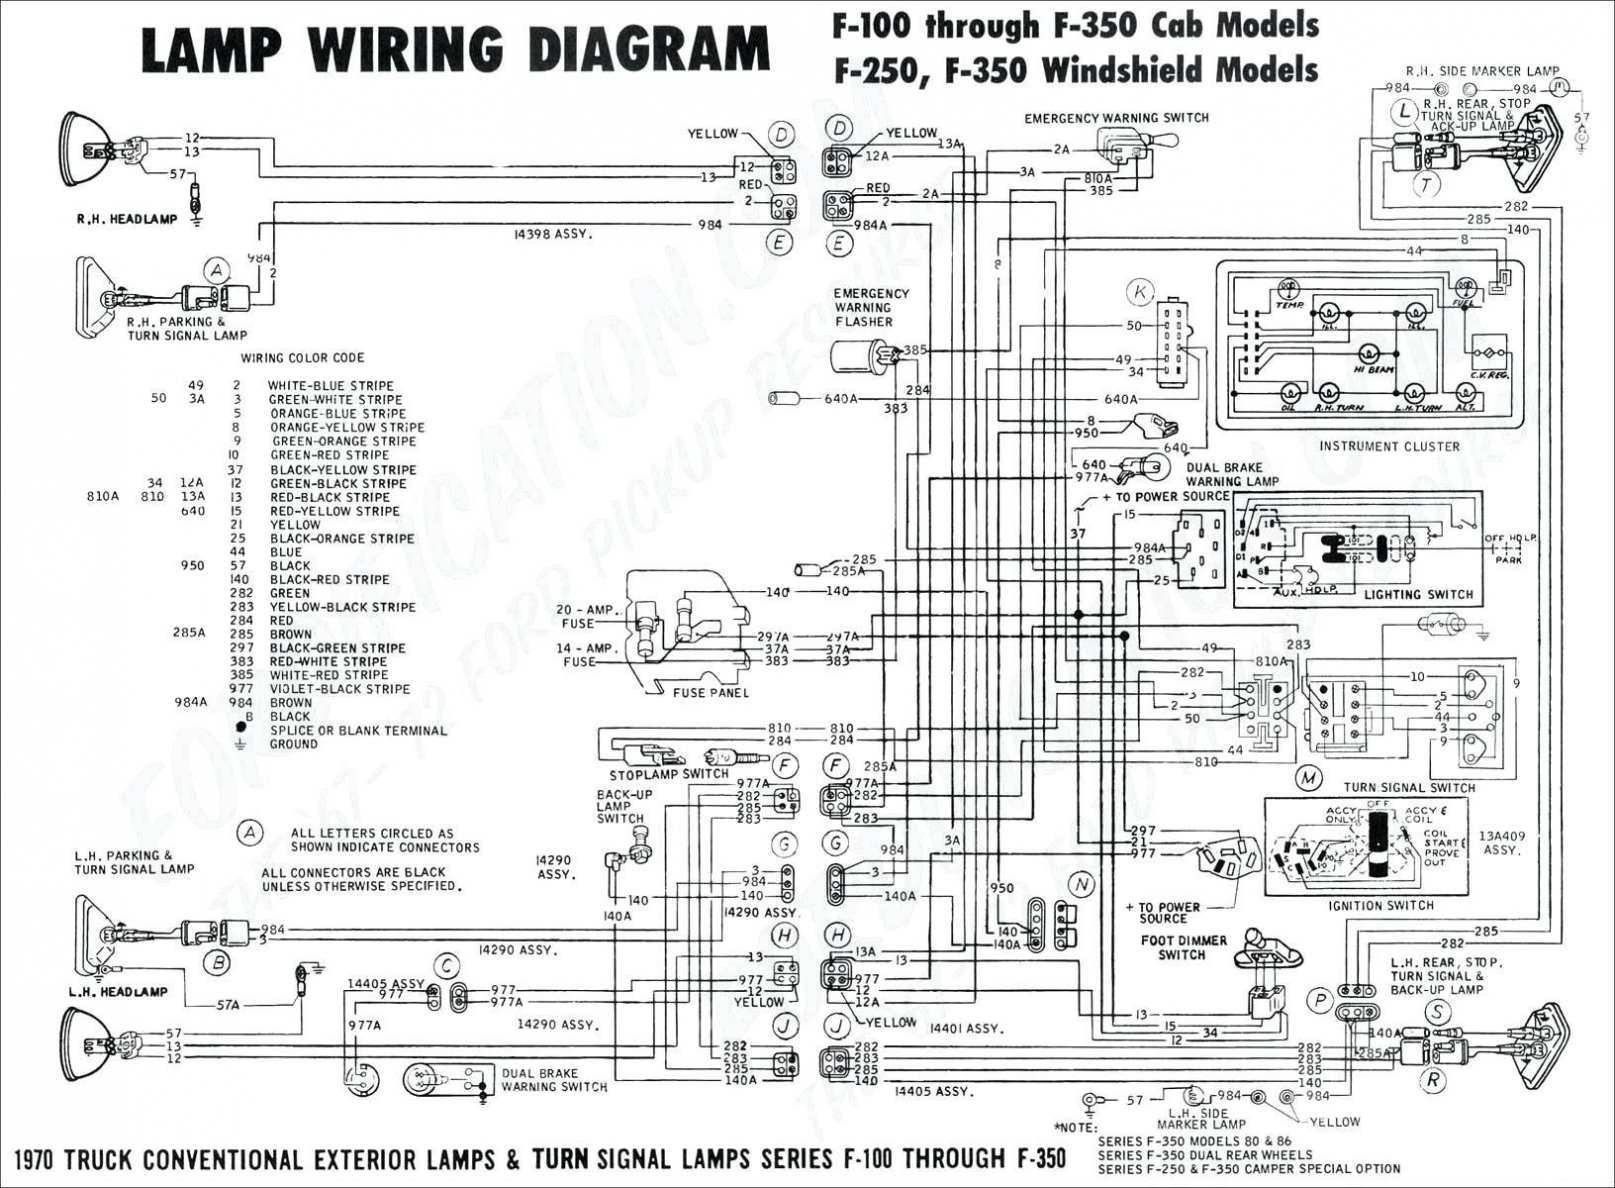 hight resolution of 1997 vw eurovan fuse box diagram wiring diagram features 1997 vw eurovan fuse box diagram